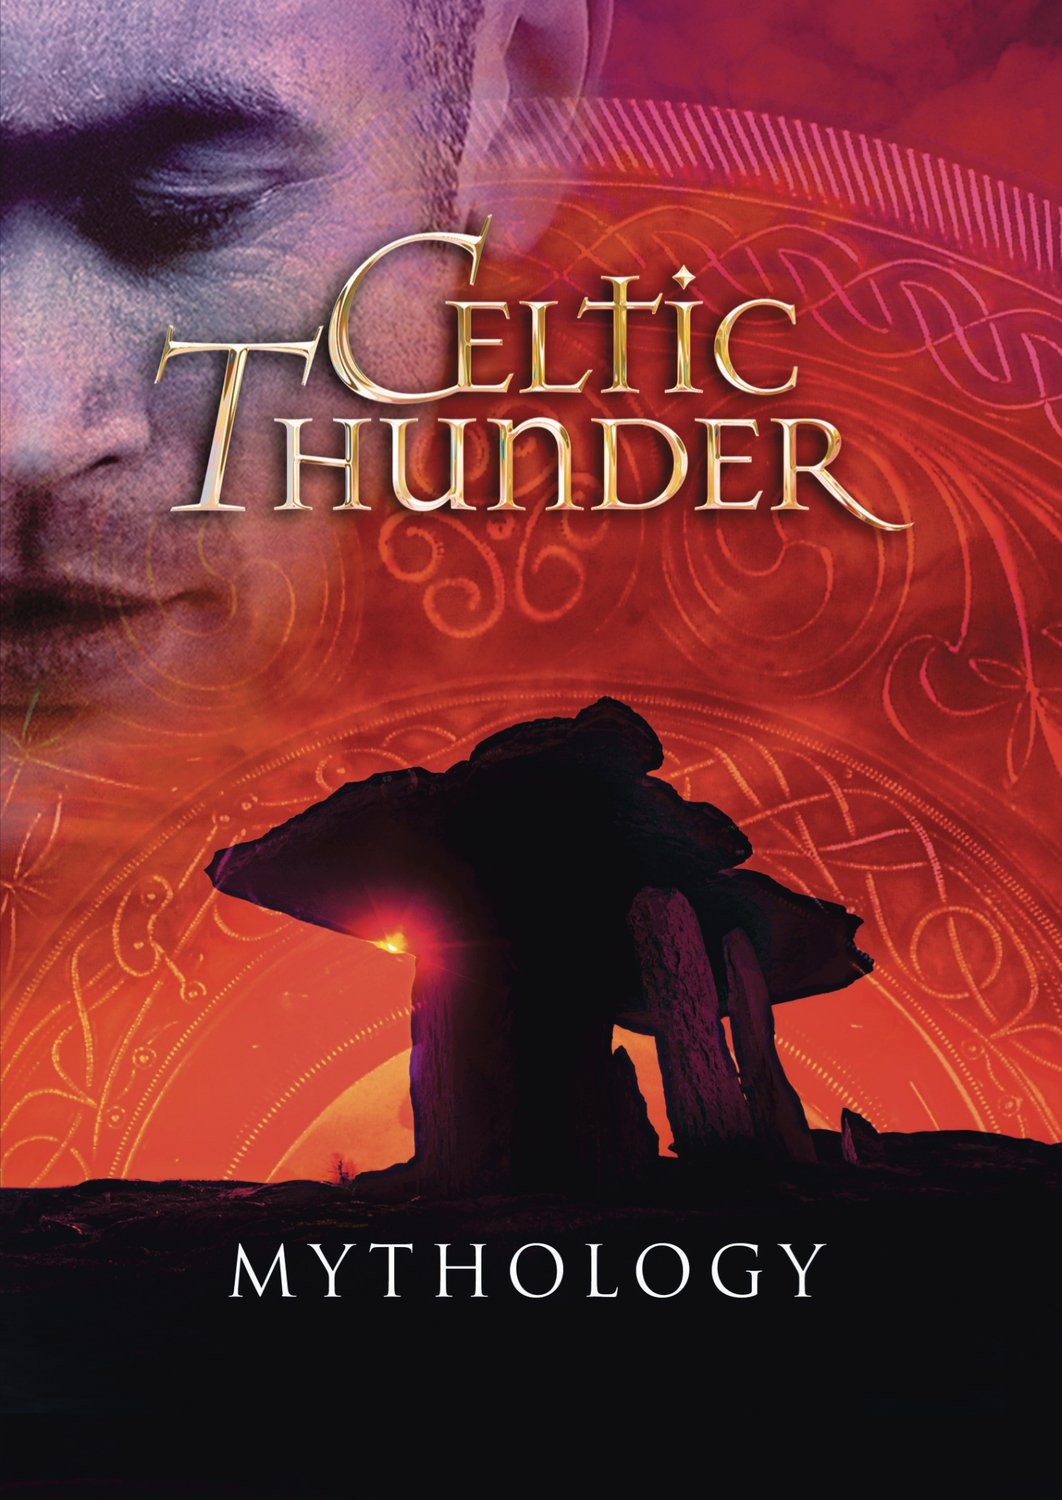 DVD : CELTIC THUNDER - Mythology (DVD)